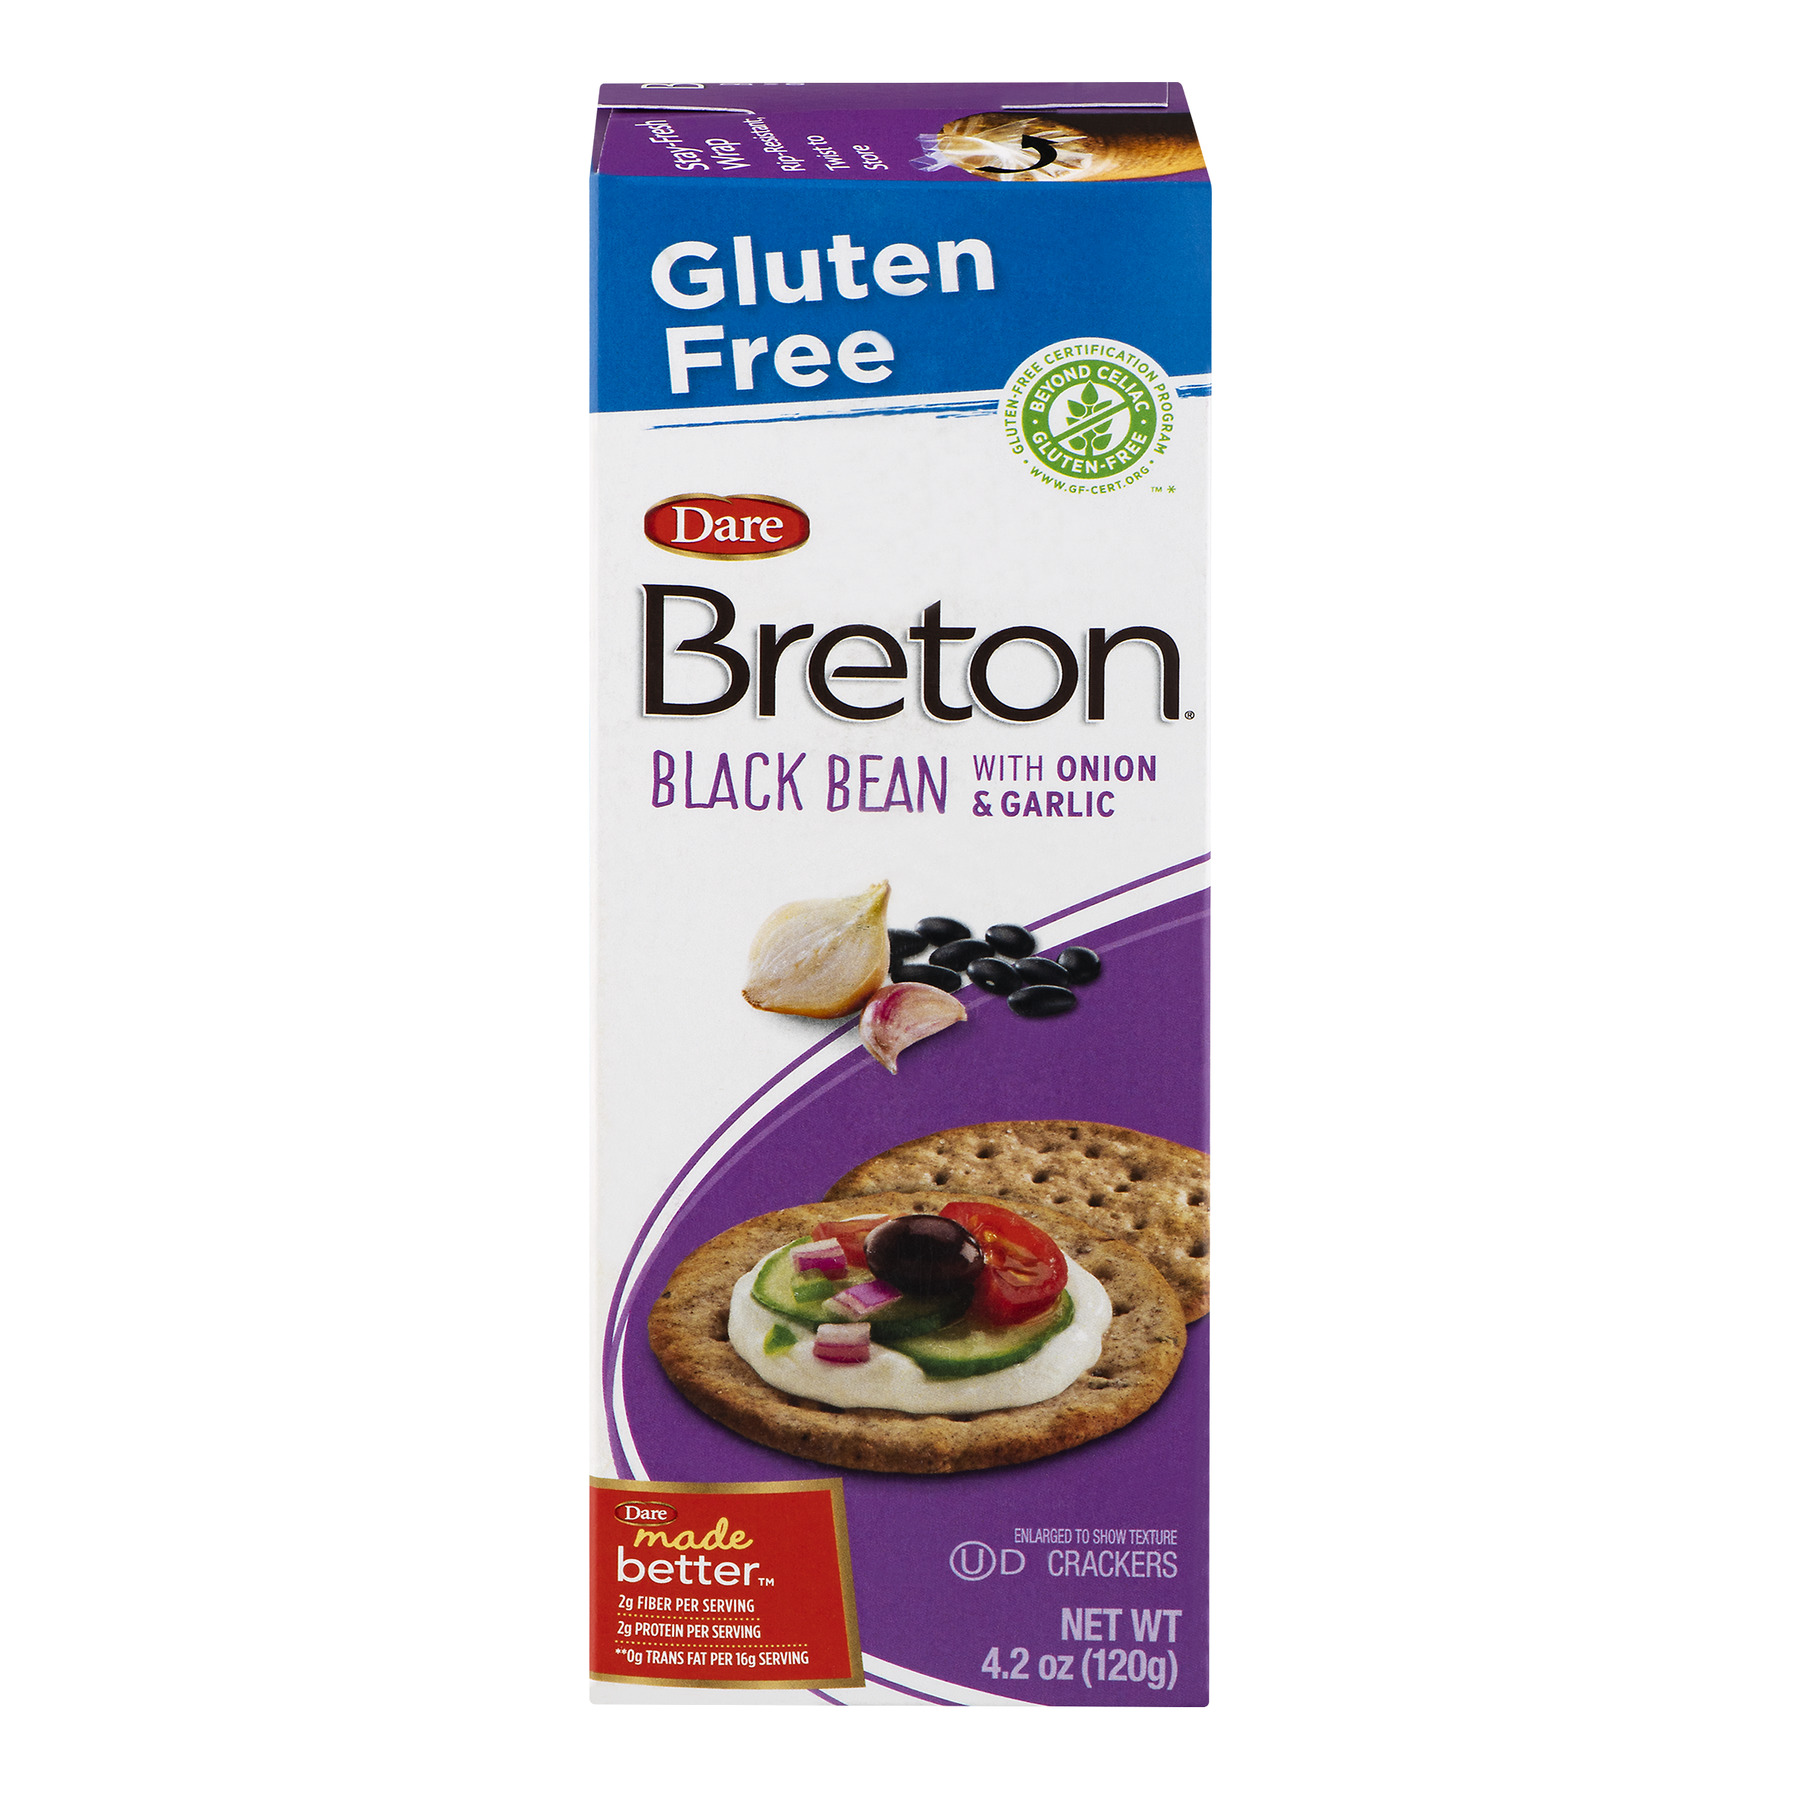 Dare Breton Crackers Black Bean With Onion & Garlic, 4.2 OZ